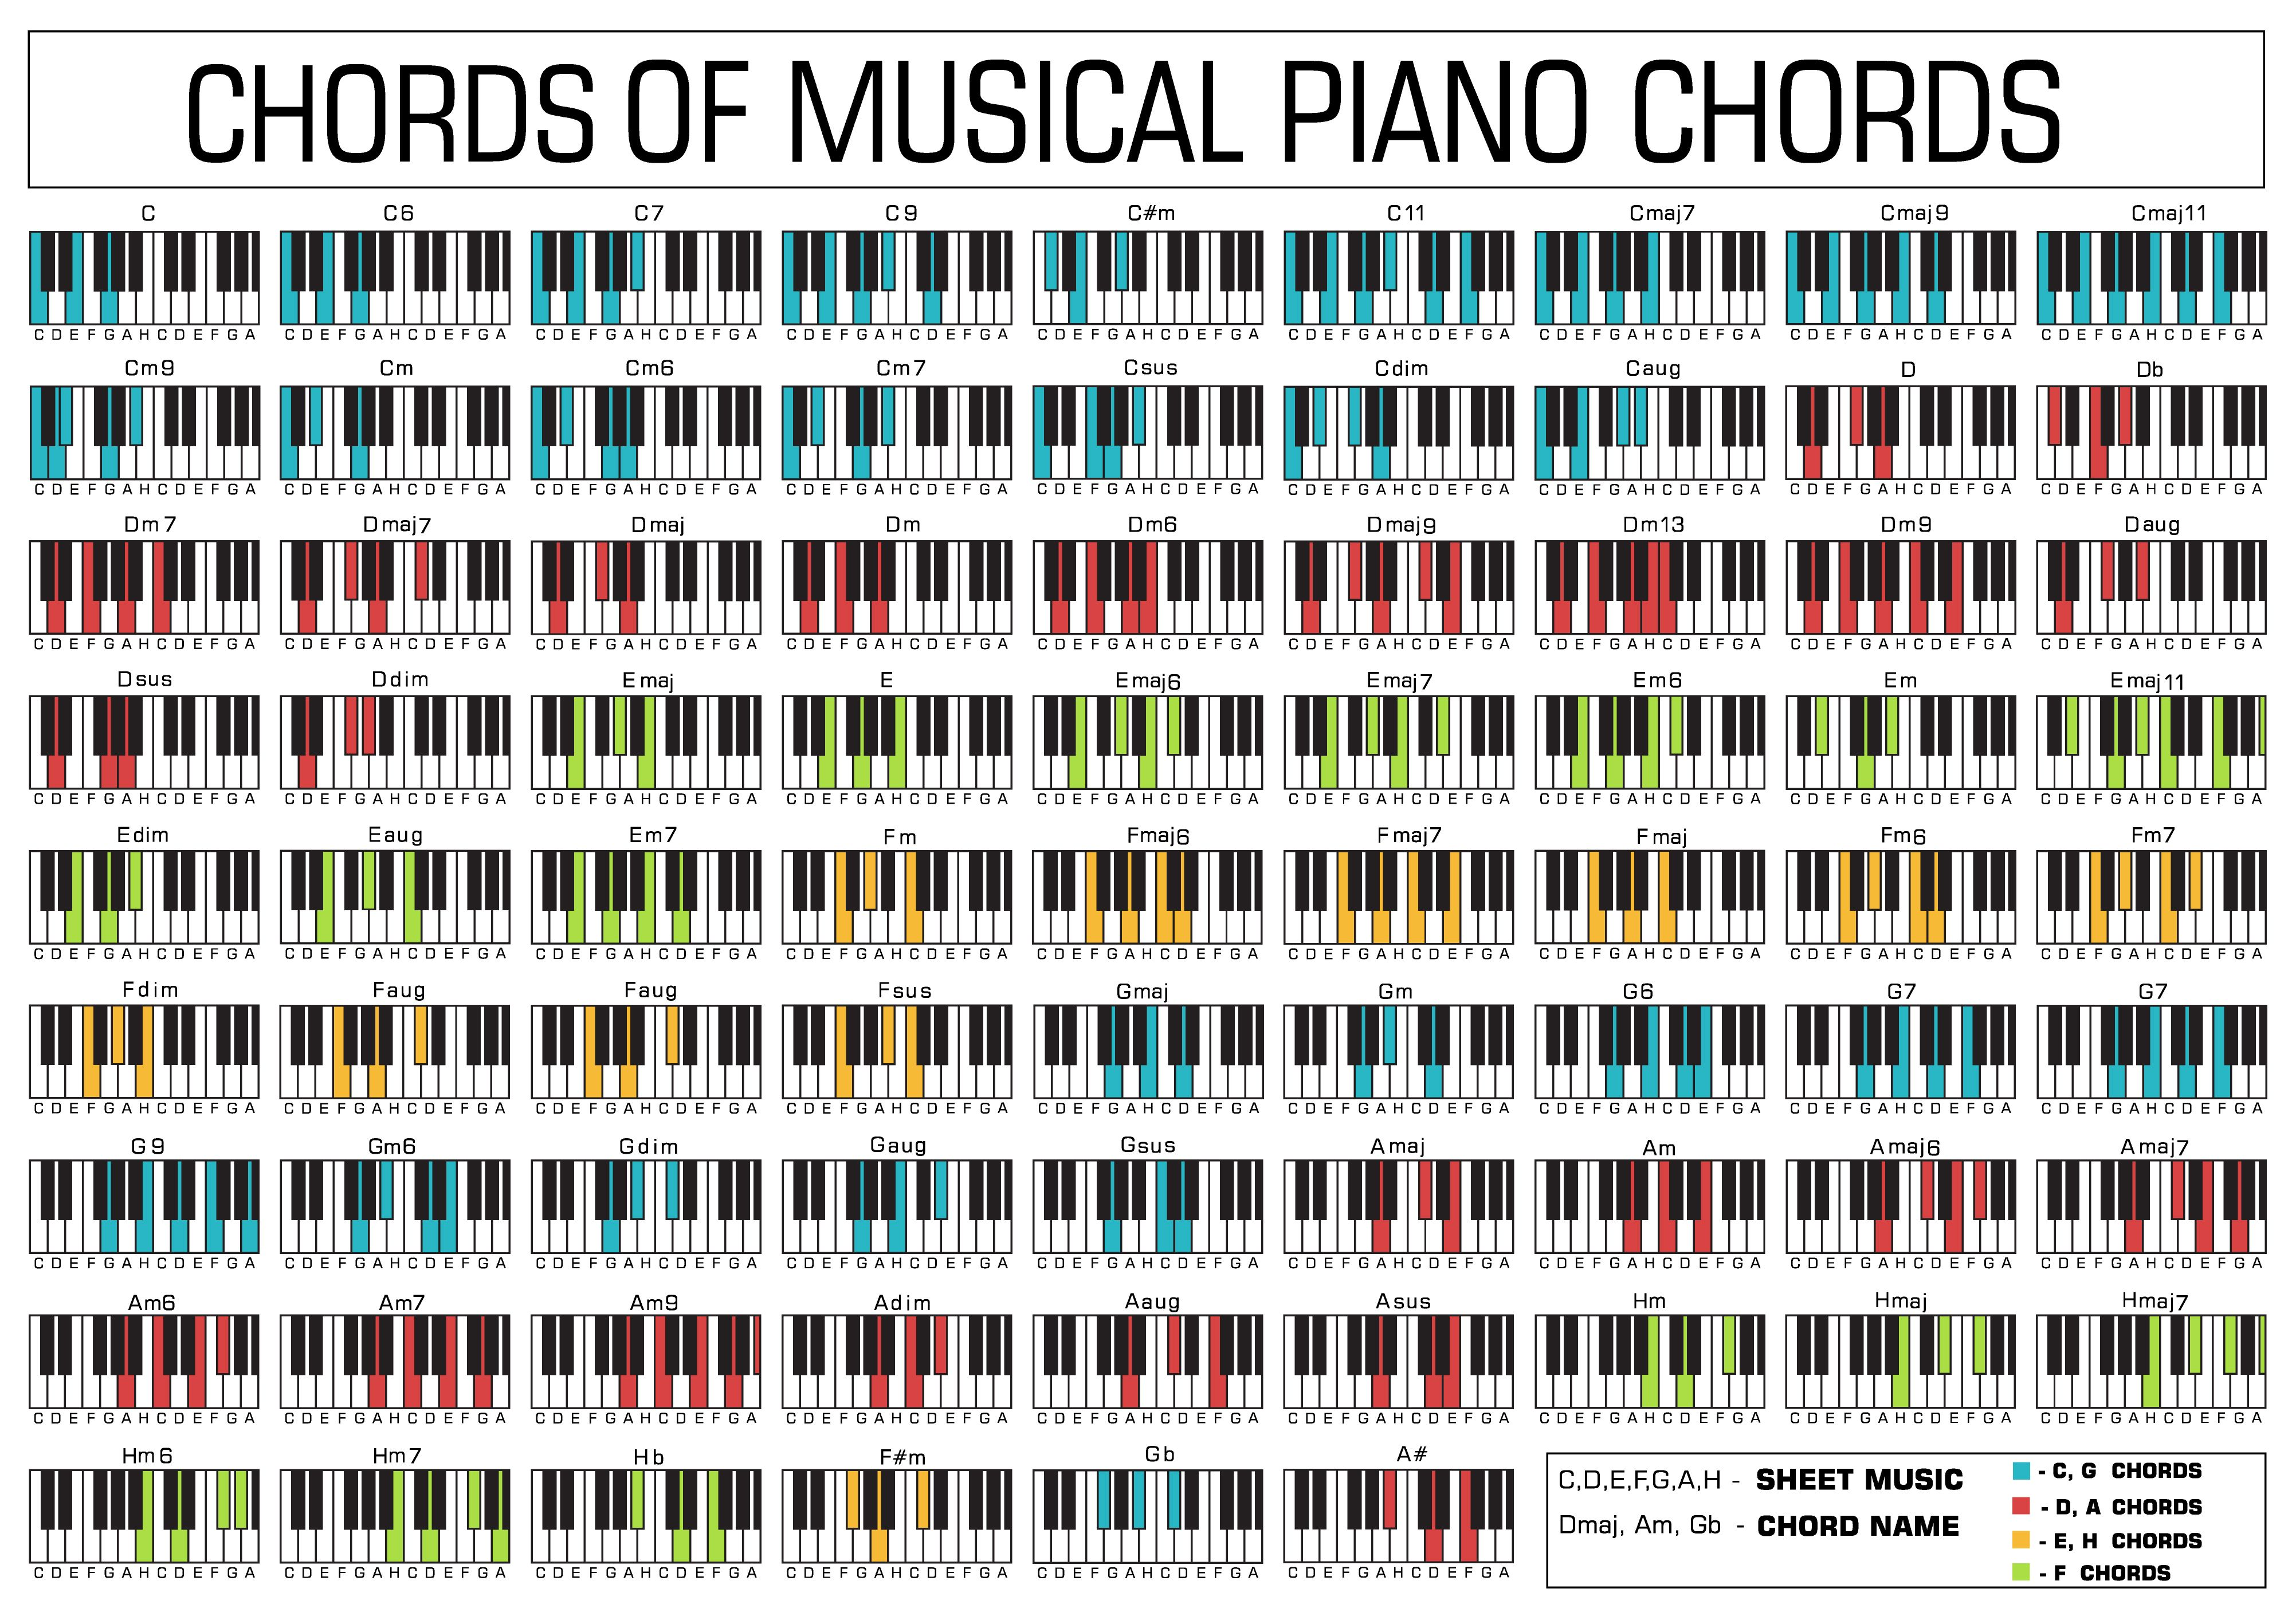 A Whole List Of Piano Chords Piano Chords Piano Chords Chart Blues Piano